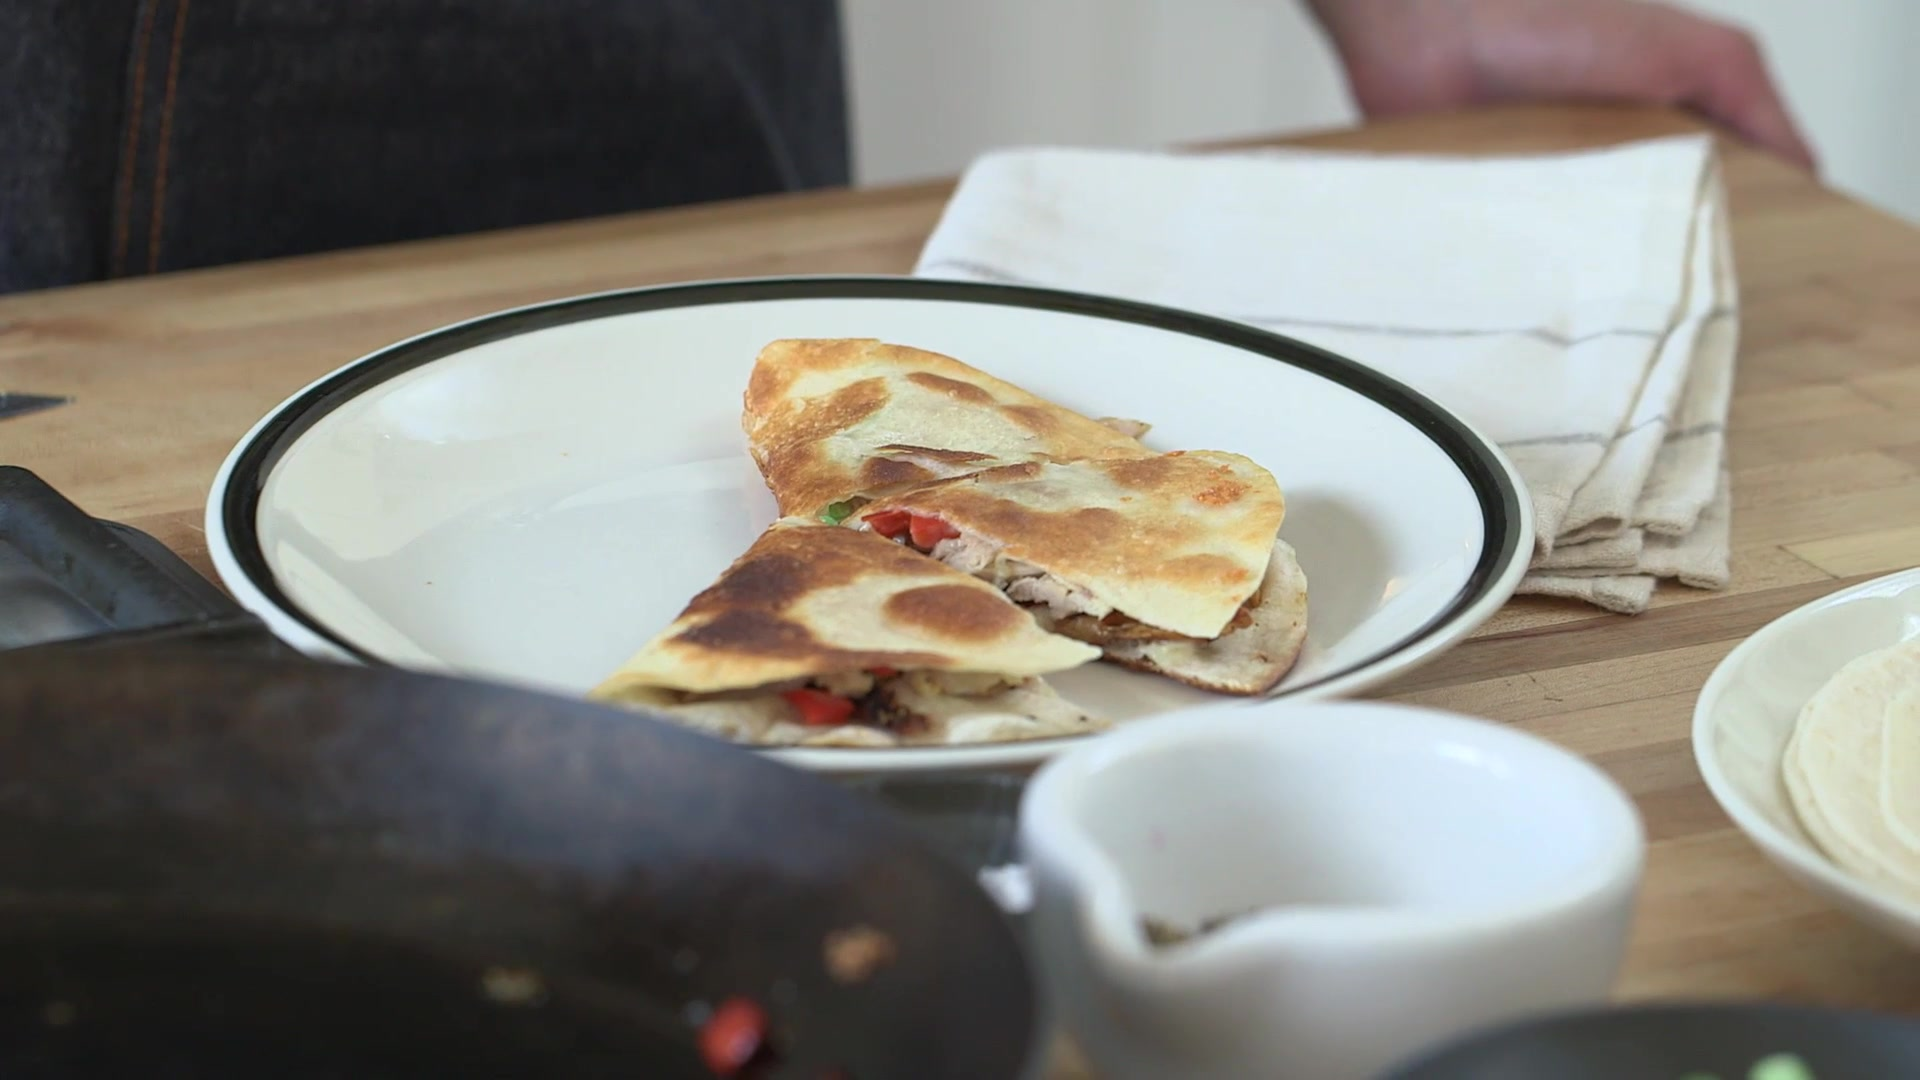 How to Make Quesadillas From Leftover Chicken